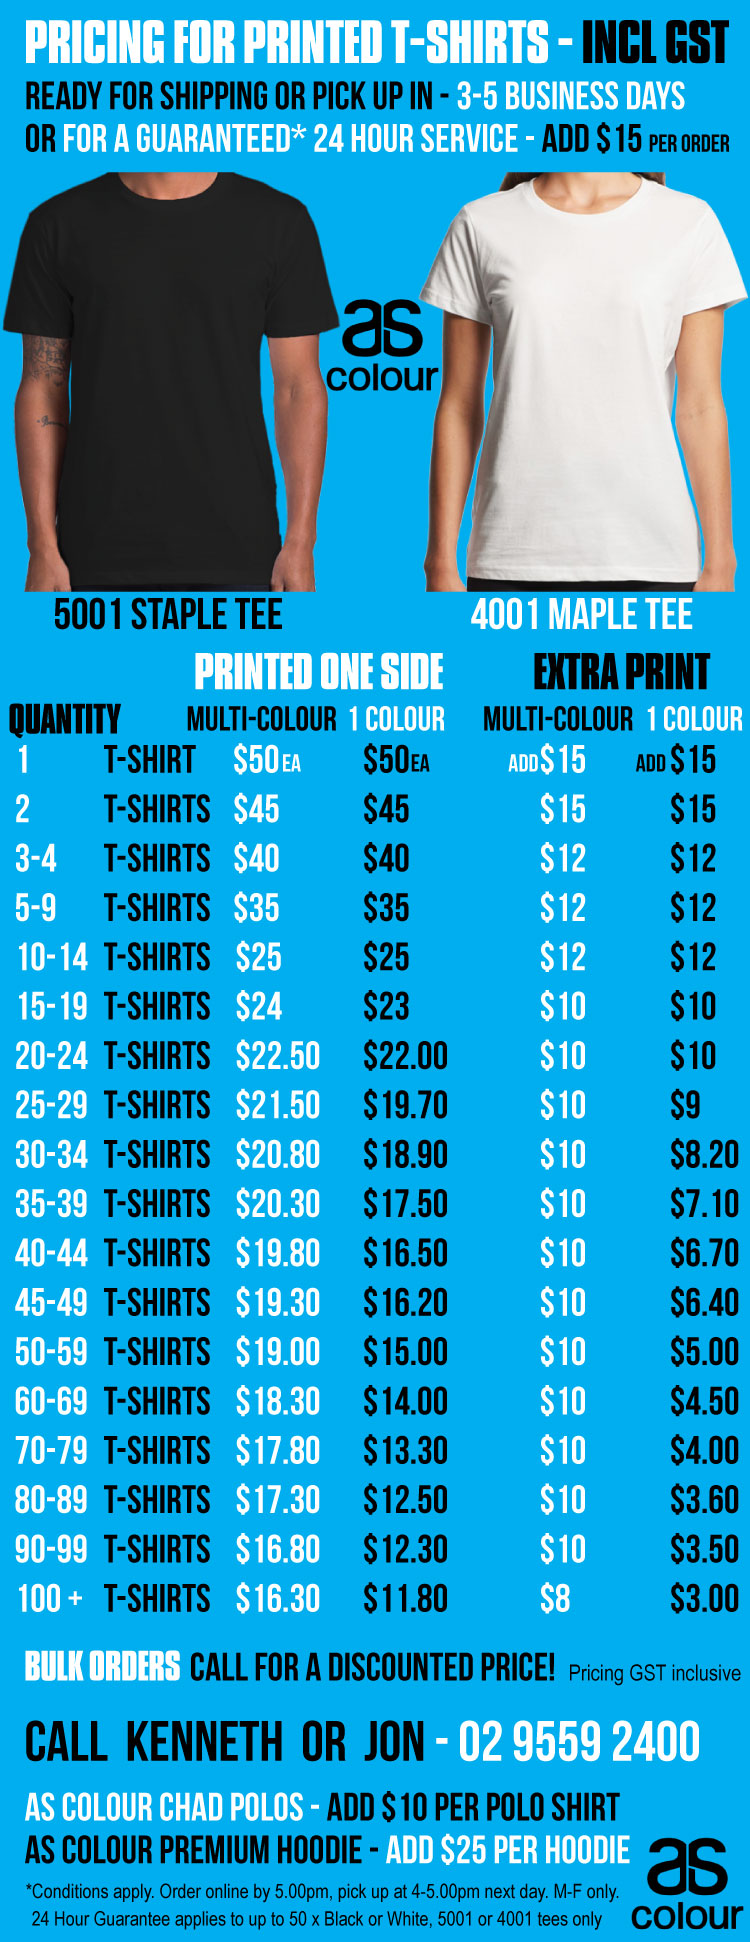 digital-printed-t-shirt-pricing